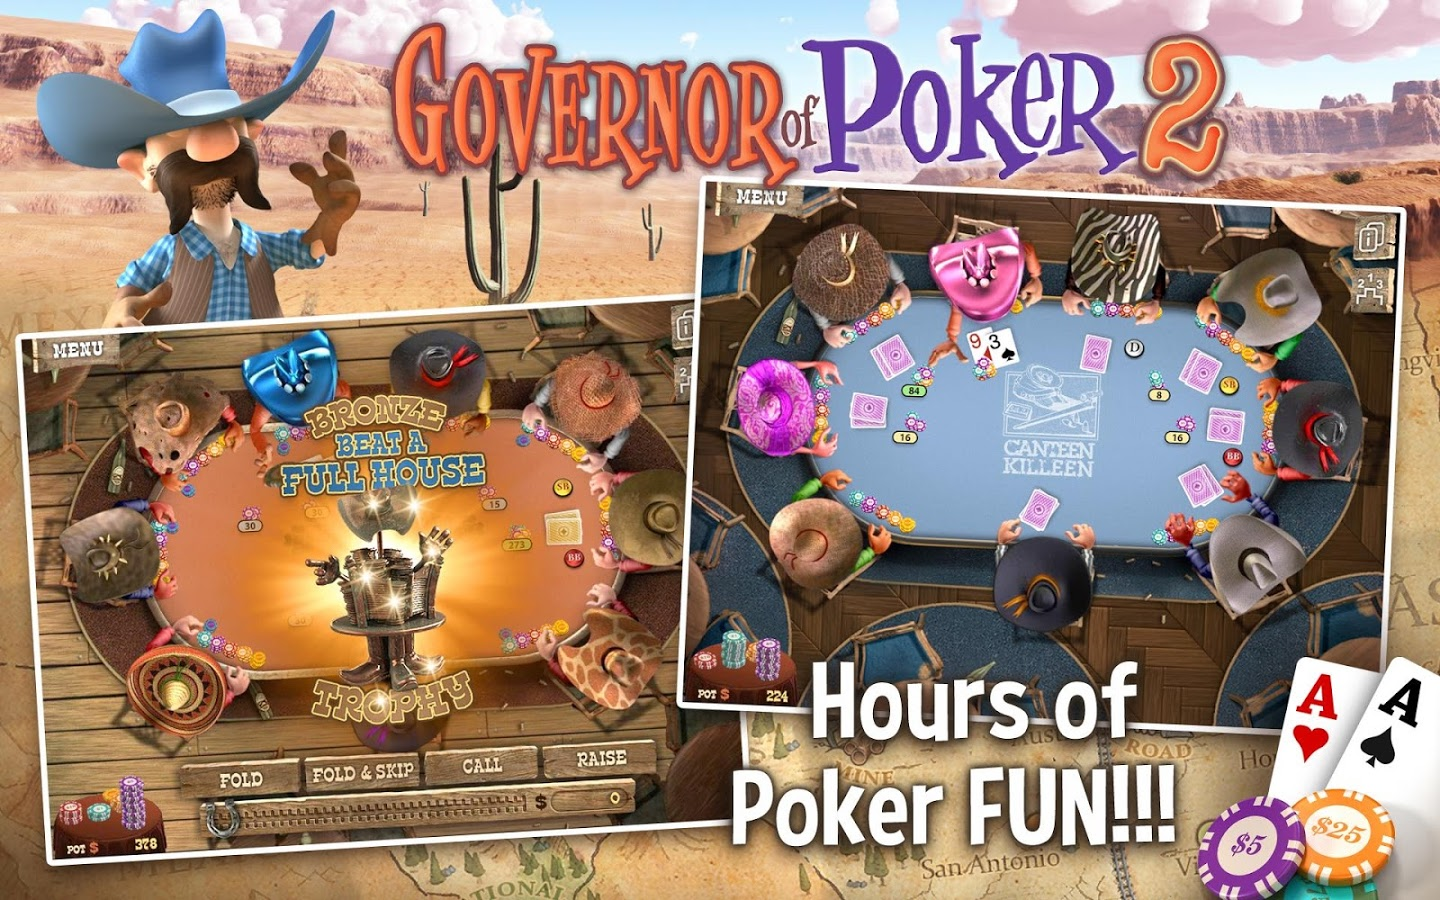 Online governor of poker 2